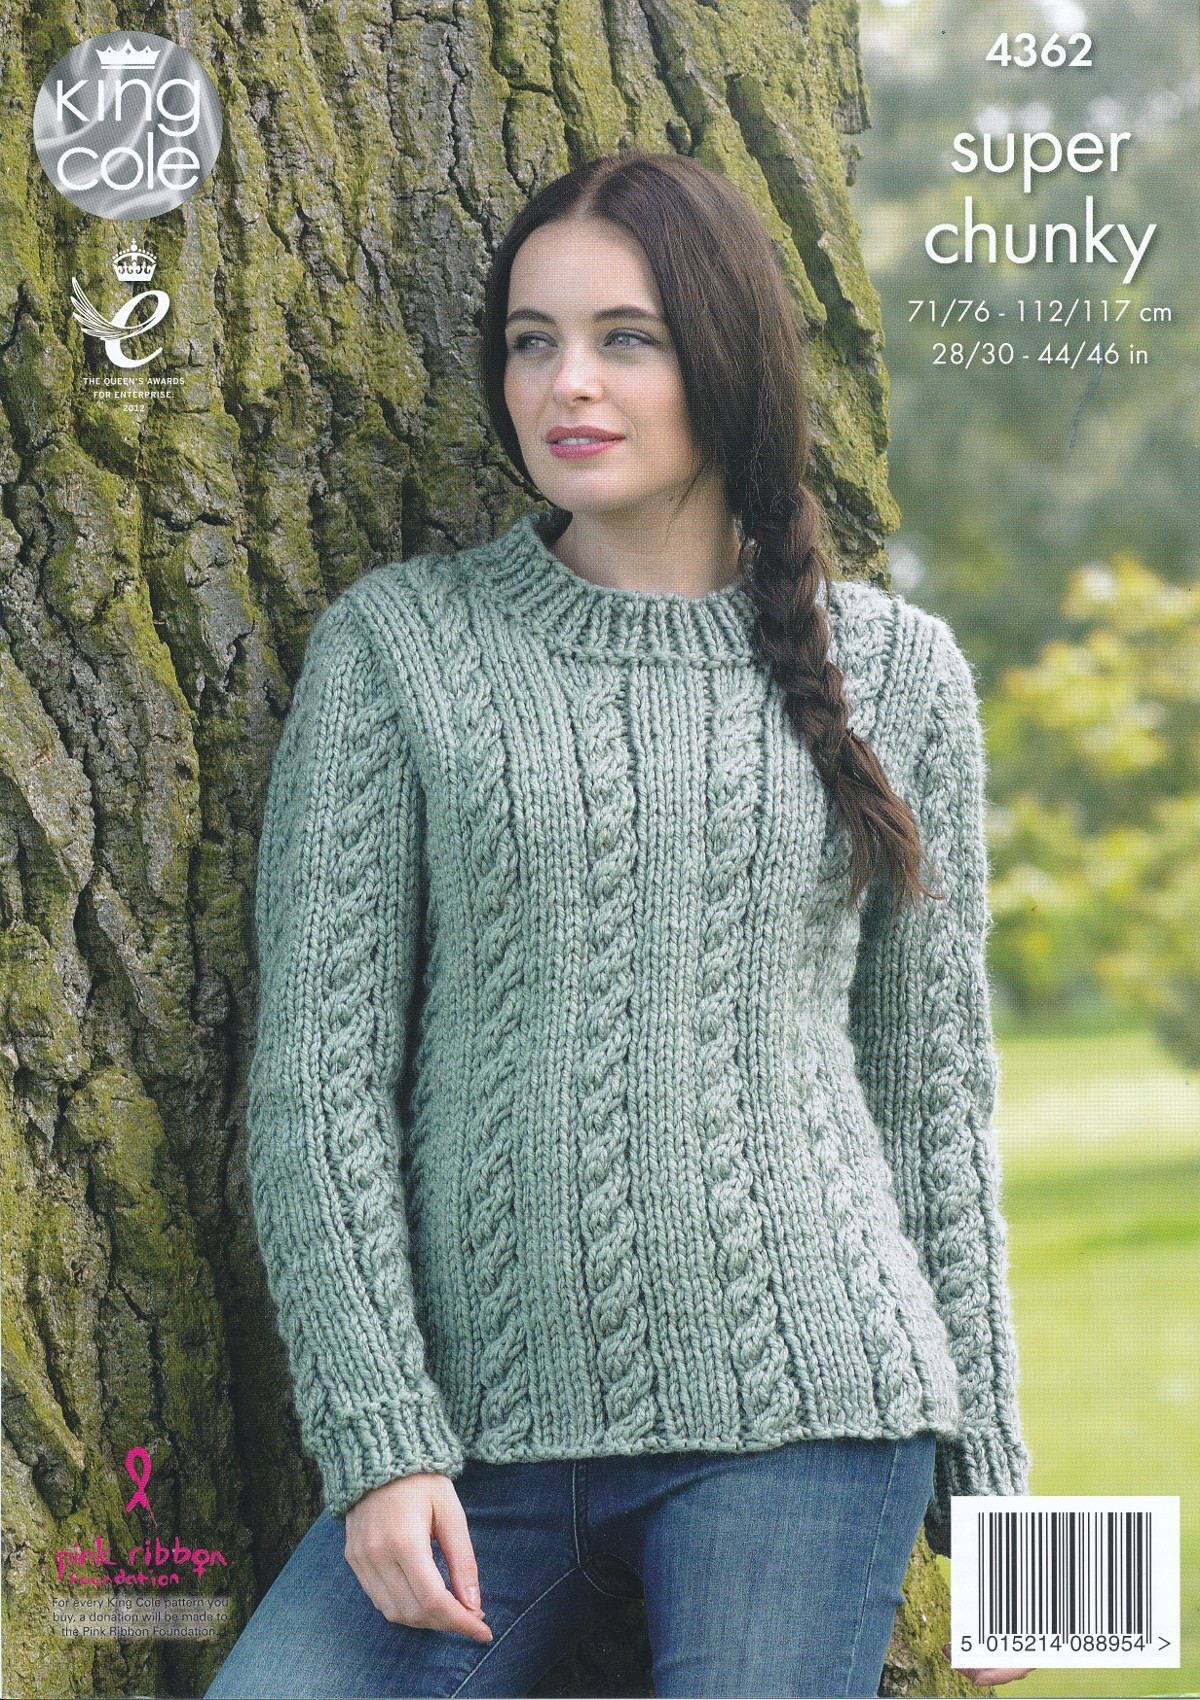 Ladies Super Chunky Knitting Pattern King Cole Cable Knit Jumper Waistcoat 43...